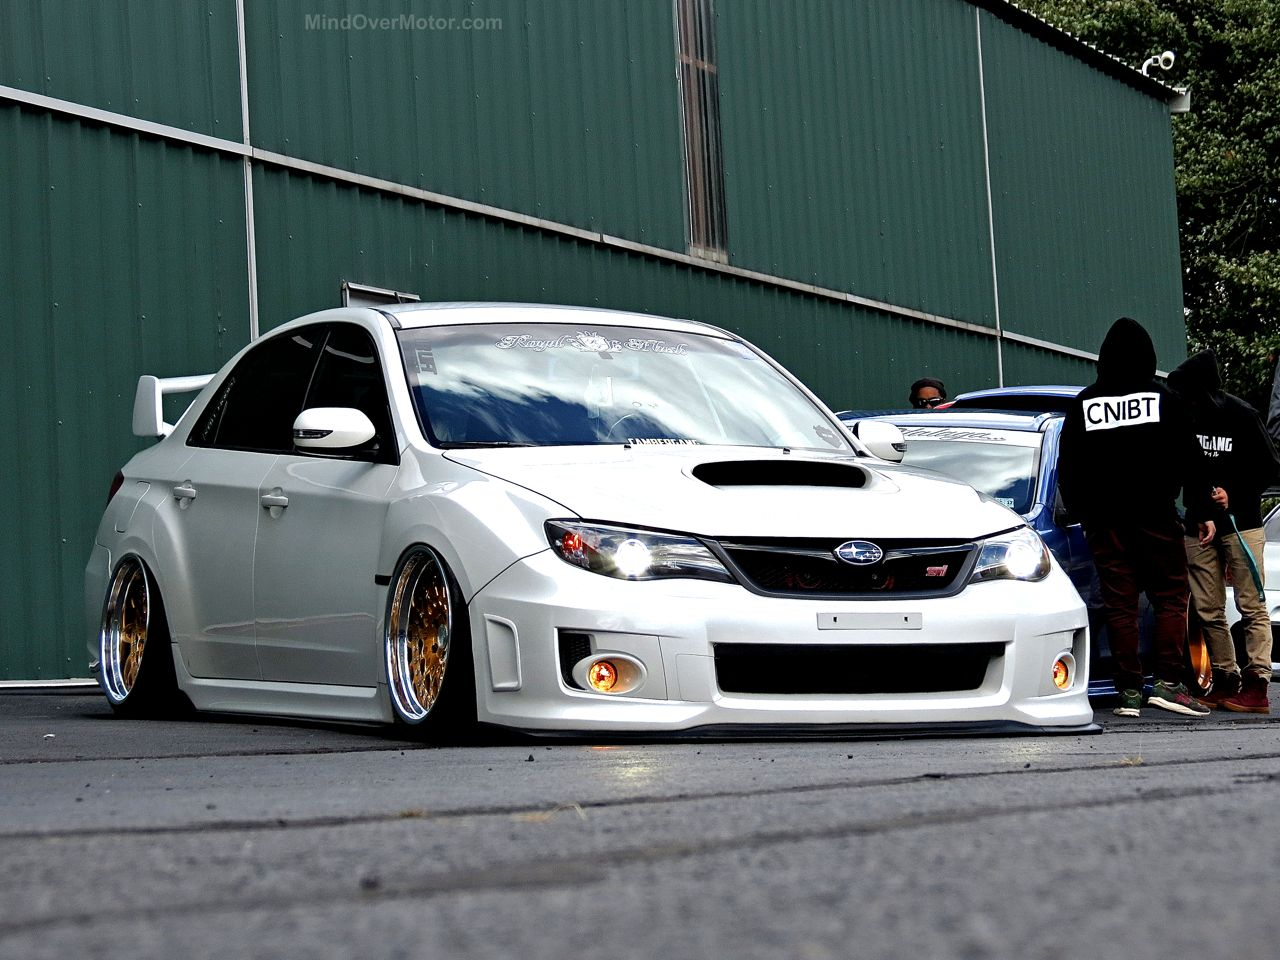 First Class Fitment Subaru STI GR Stanced